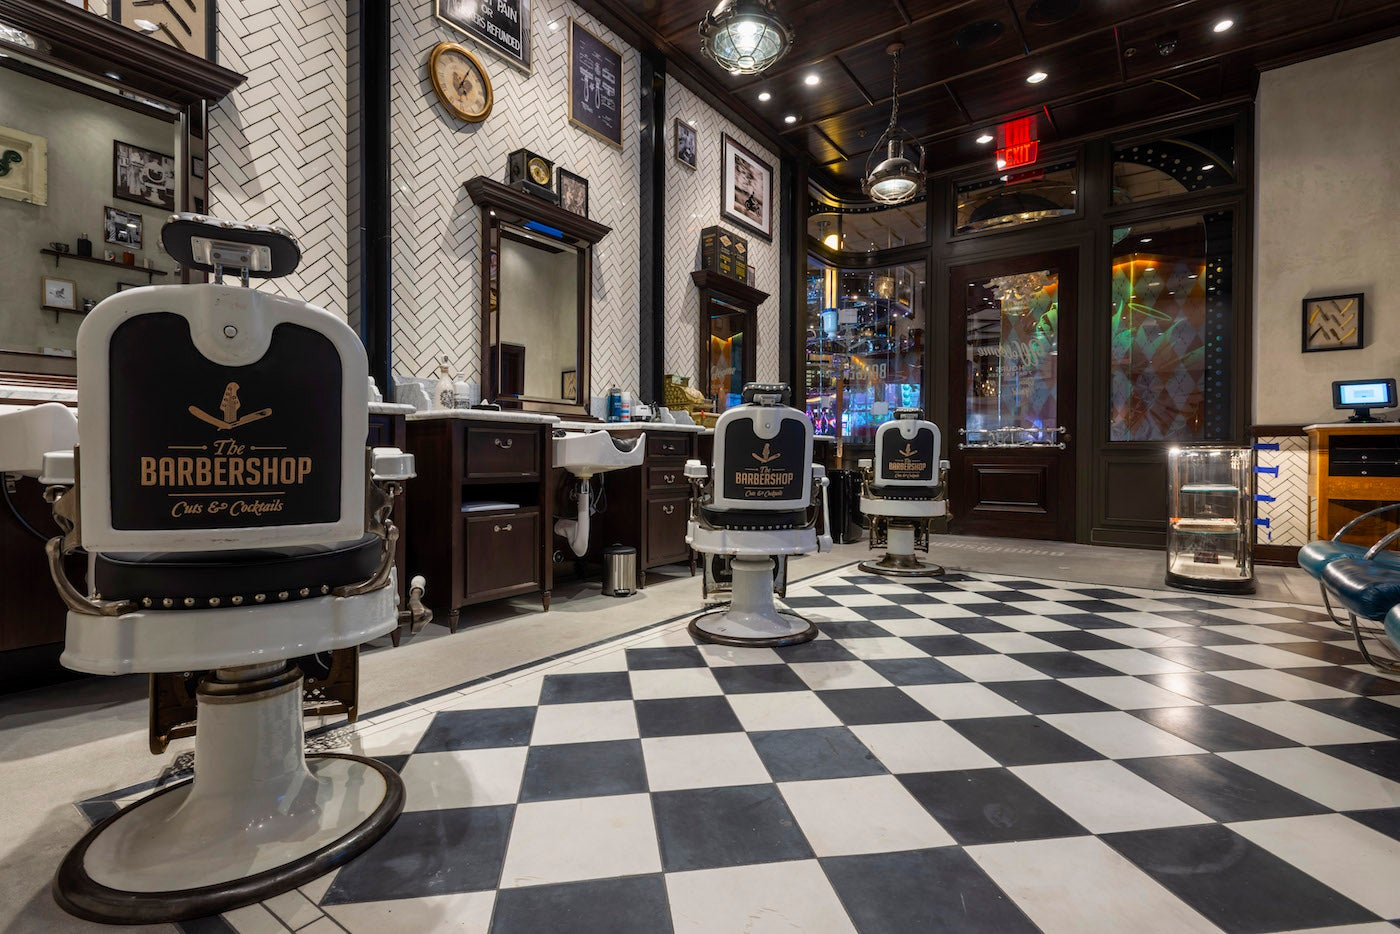 The Barbershop Cut and Cocktails at the Cosmopolitan Hotel in Las Vegas